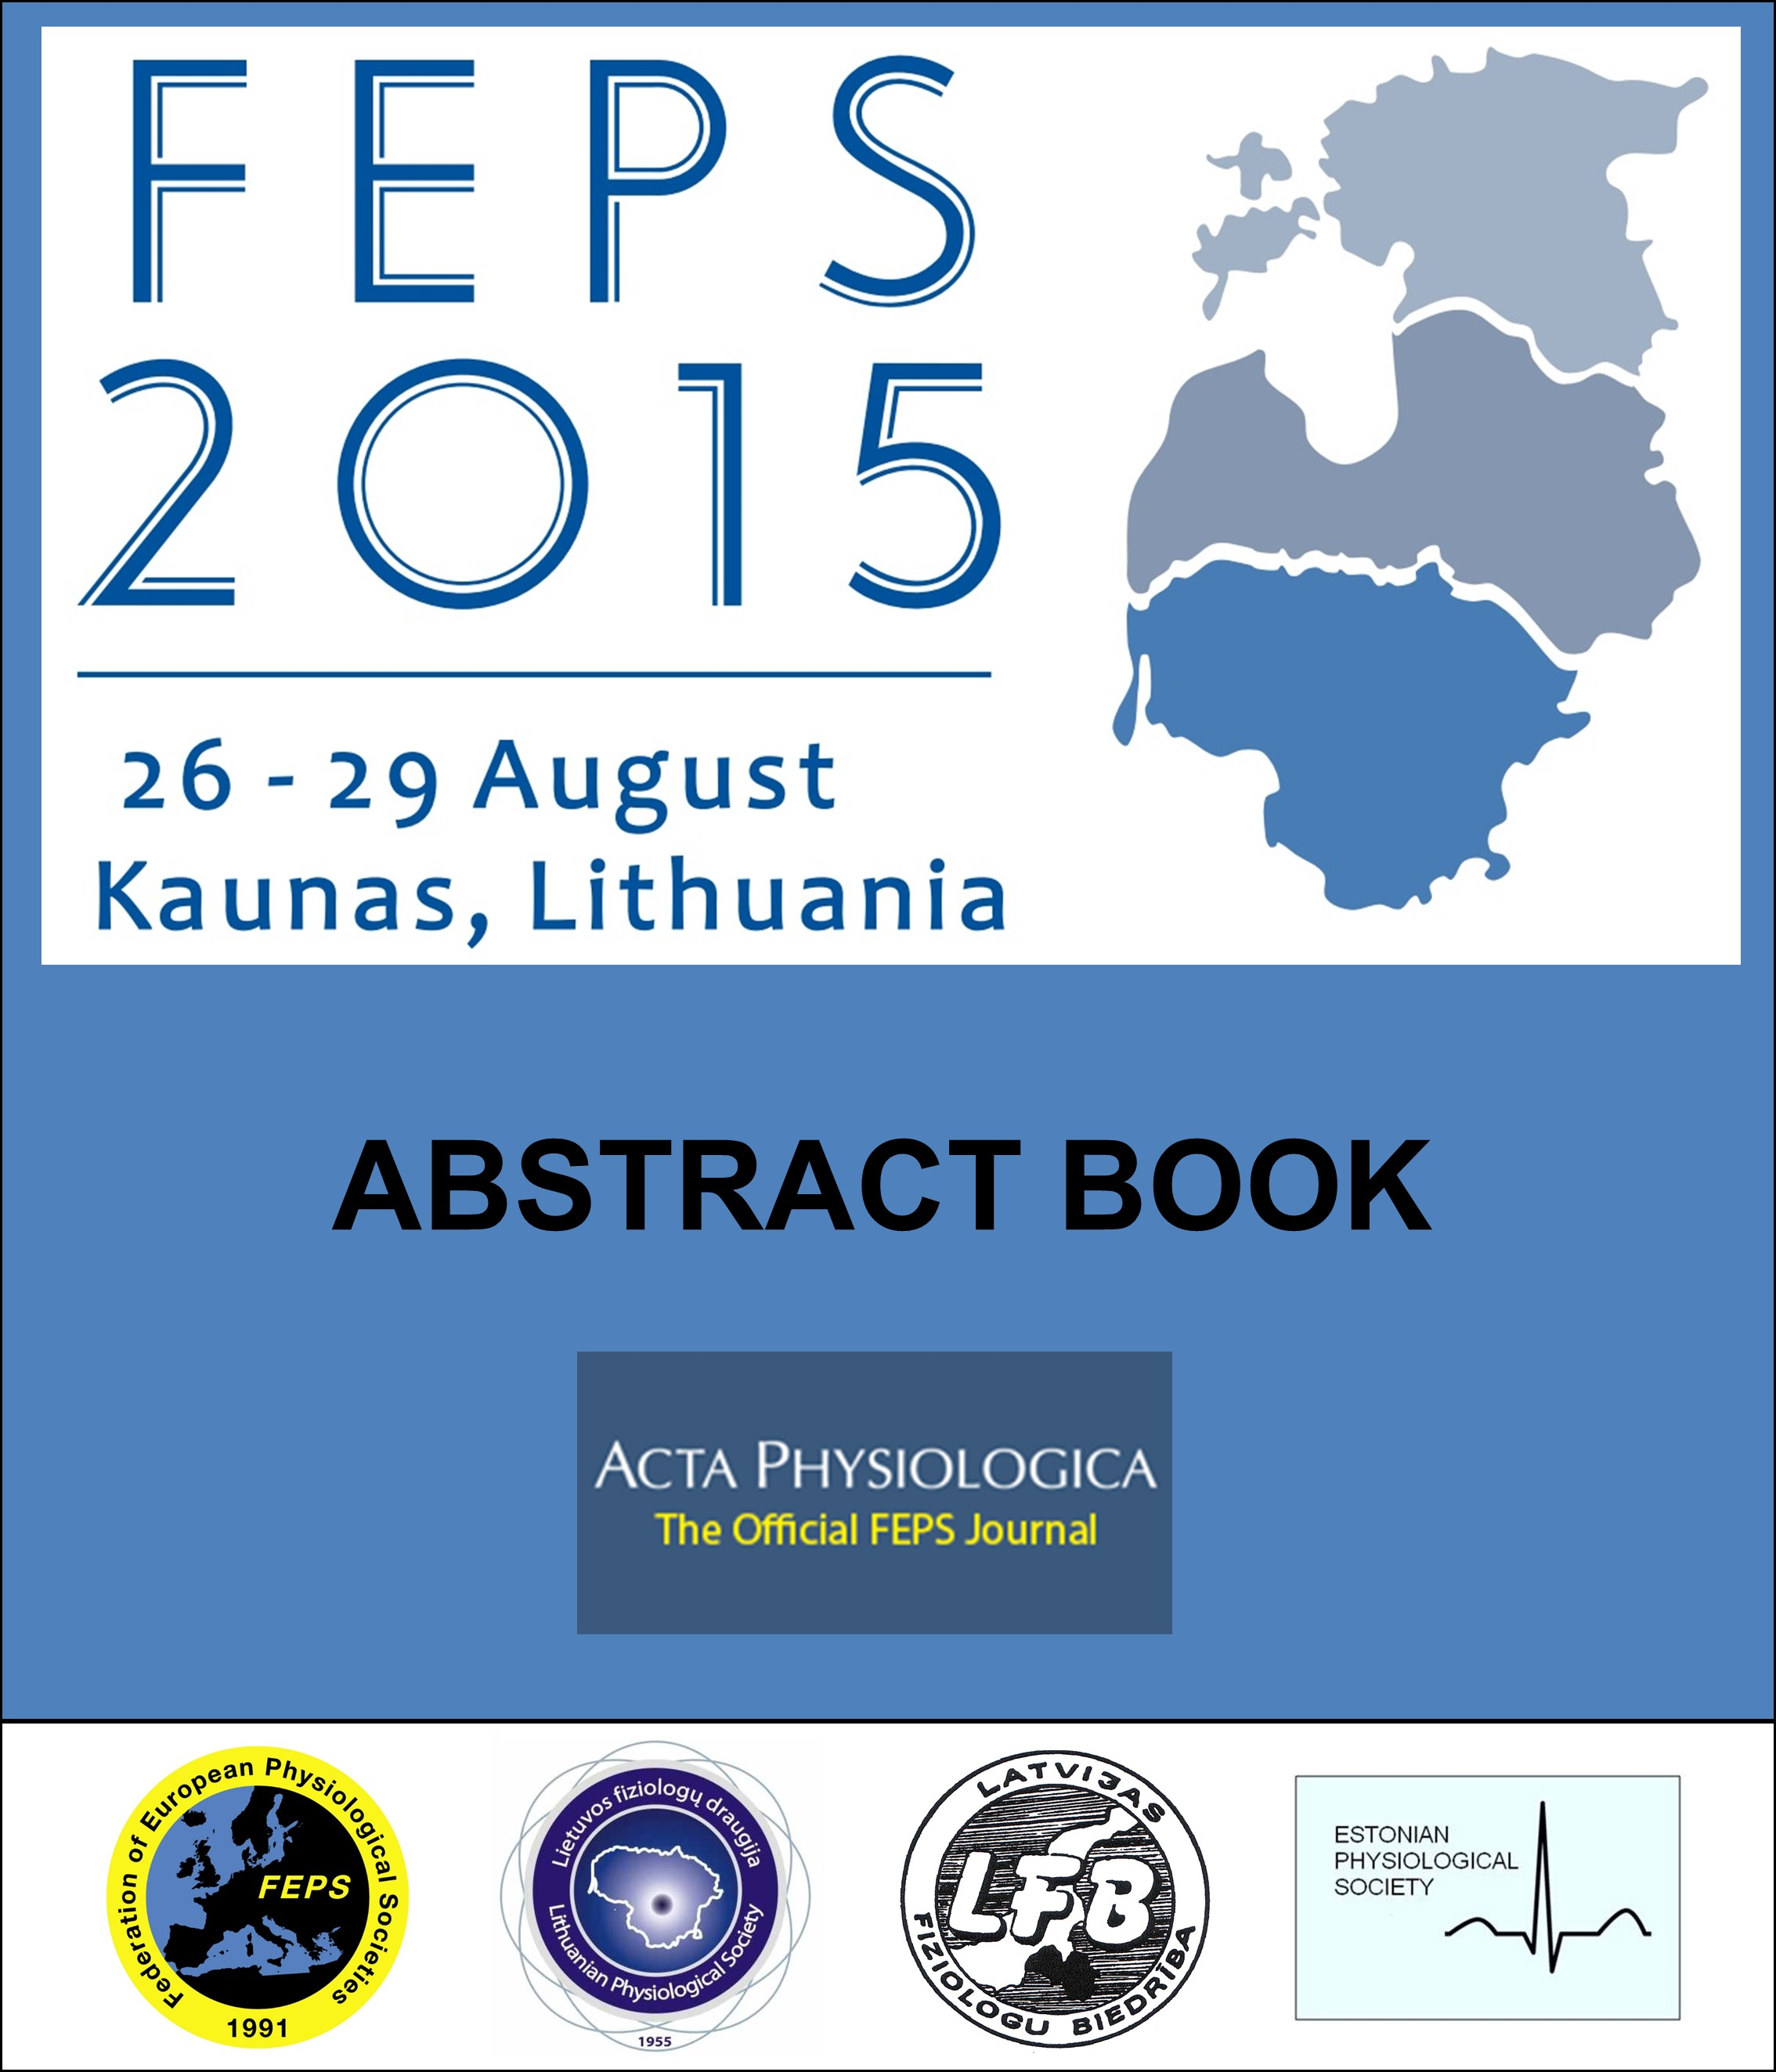 FEPS 2015 Abstract Book Cover_1